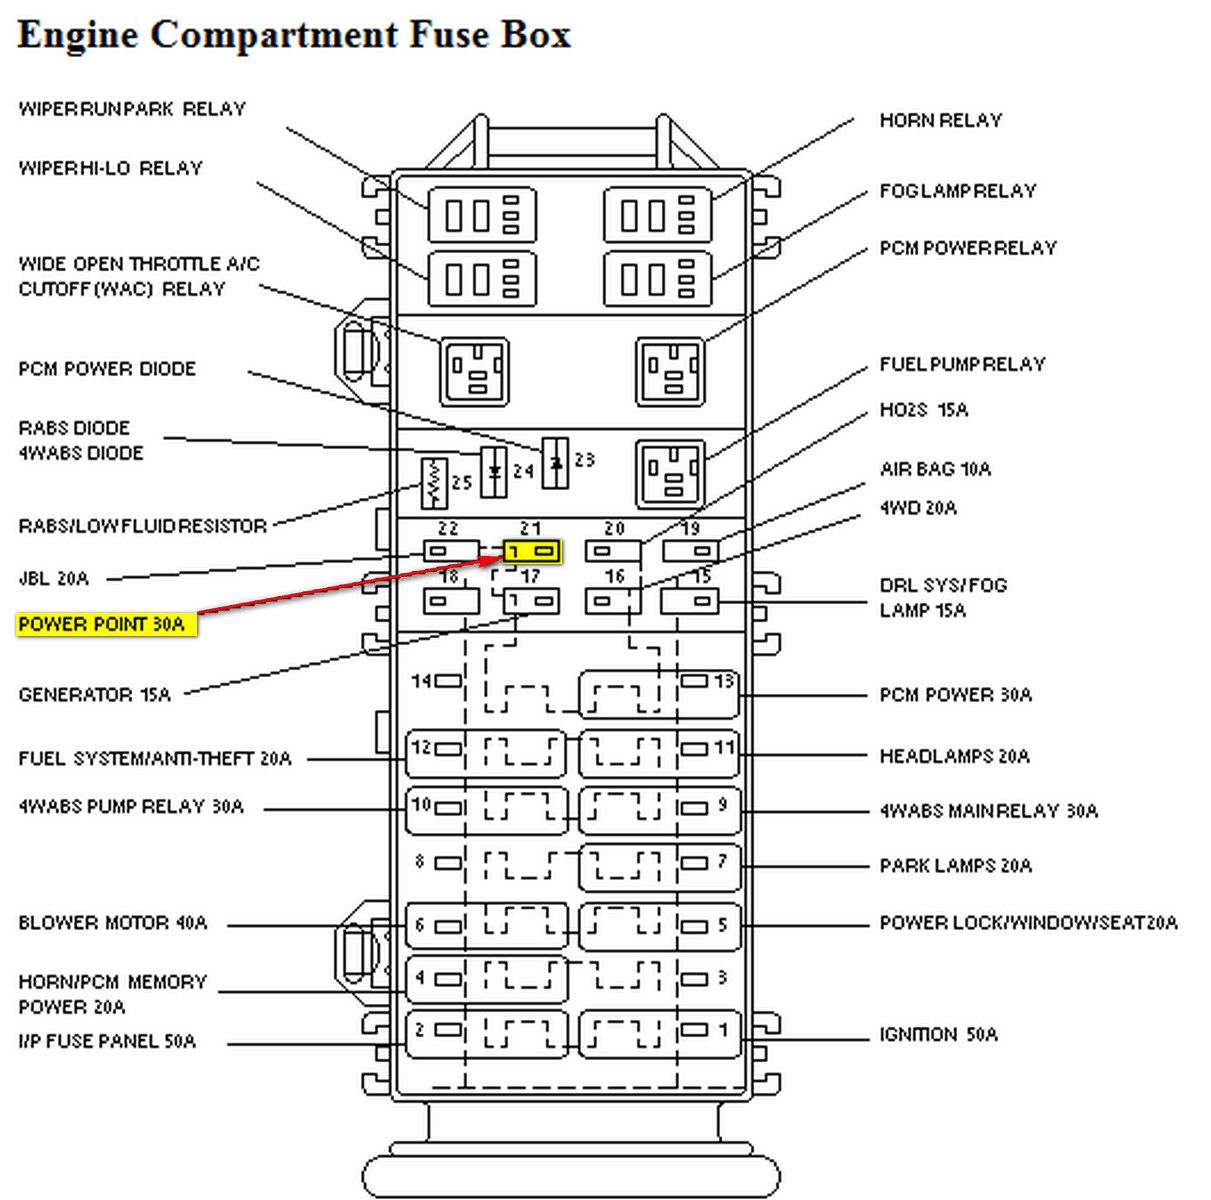 hight resolution of 97 explorer fuse box wiring diagram fuse box diagram also leryn franco on 2001 ford e350 fuel pump relay